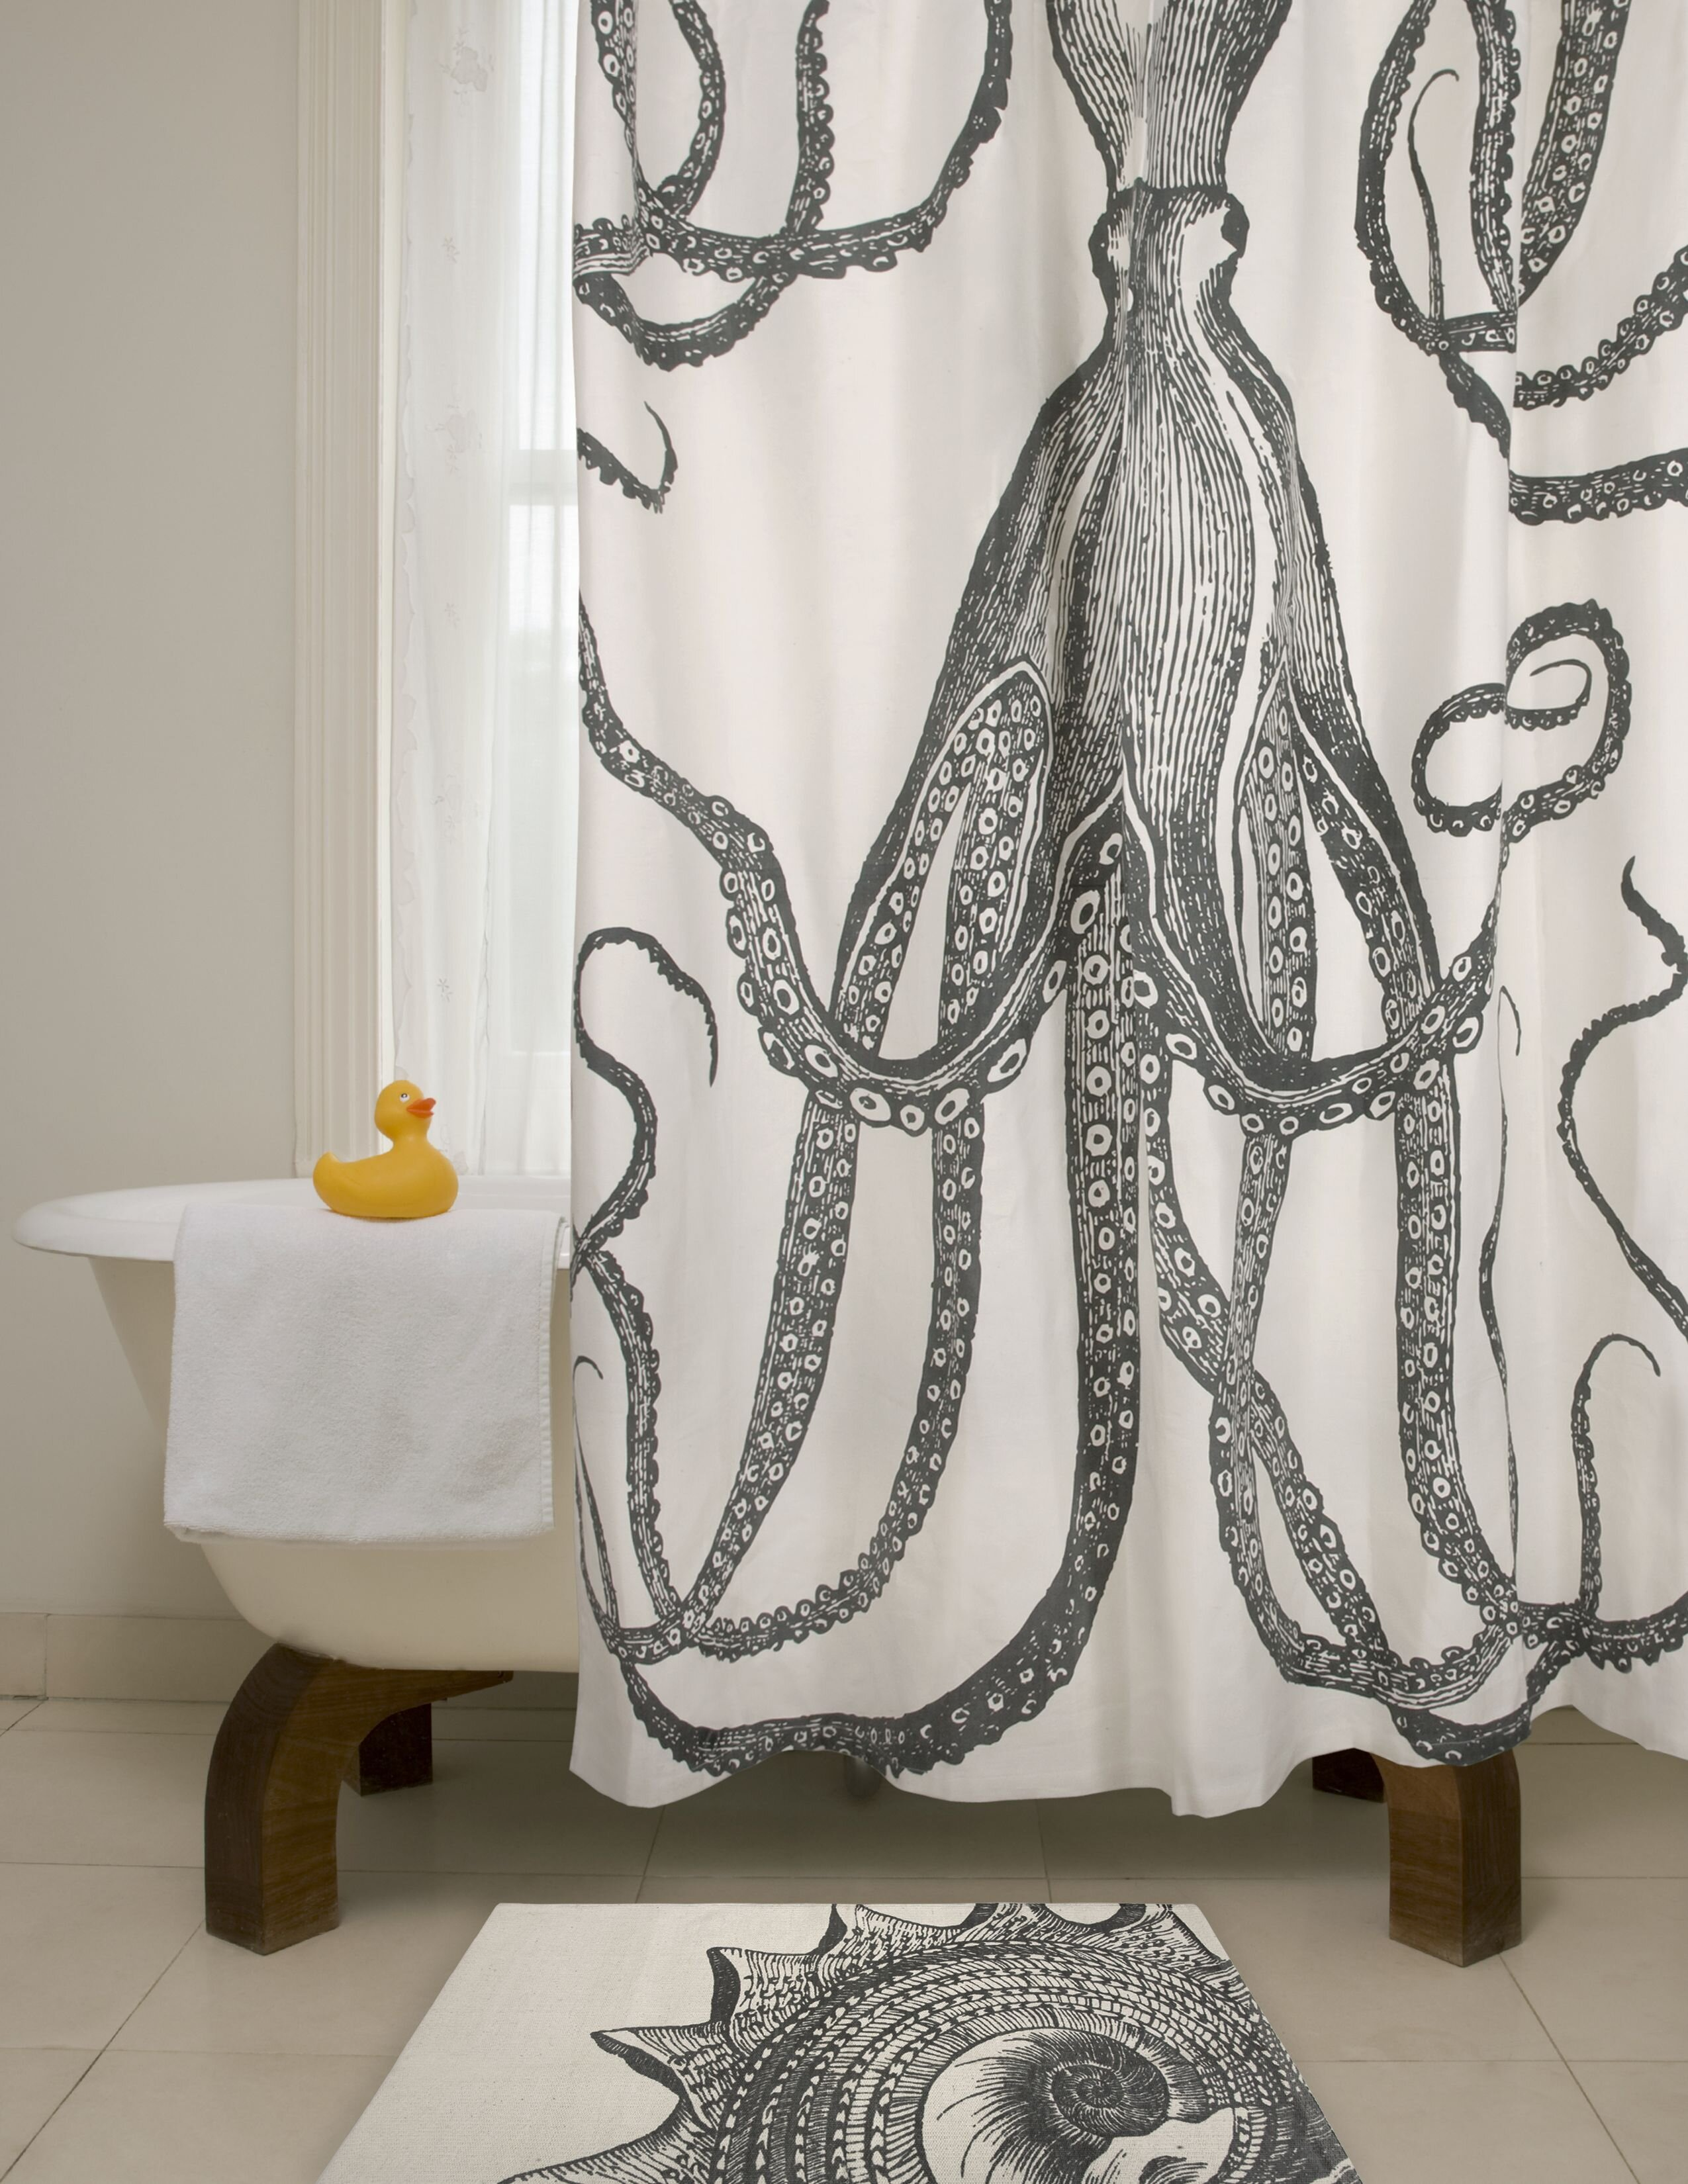 100 Cotton Breakwater Bay Shower Curtains Shower Liners You Ll Love In 2021 Wayfair